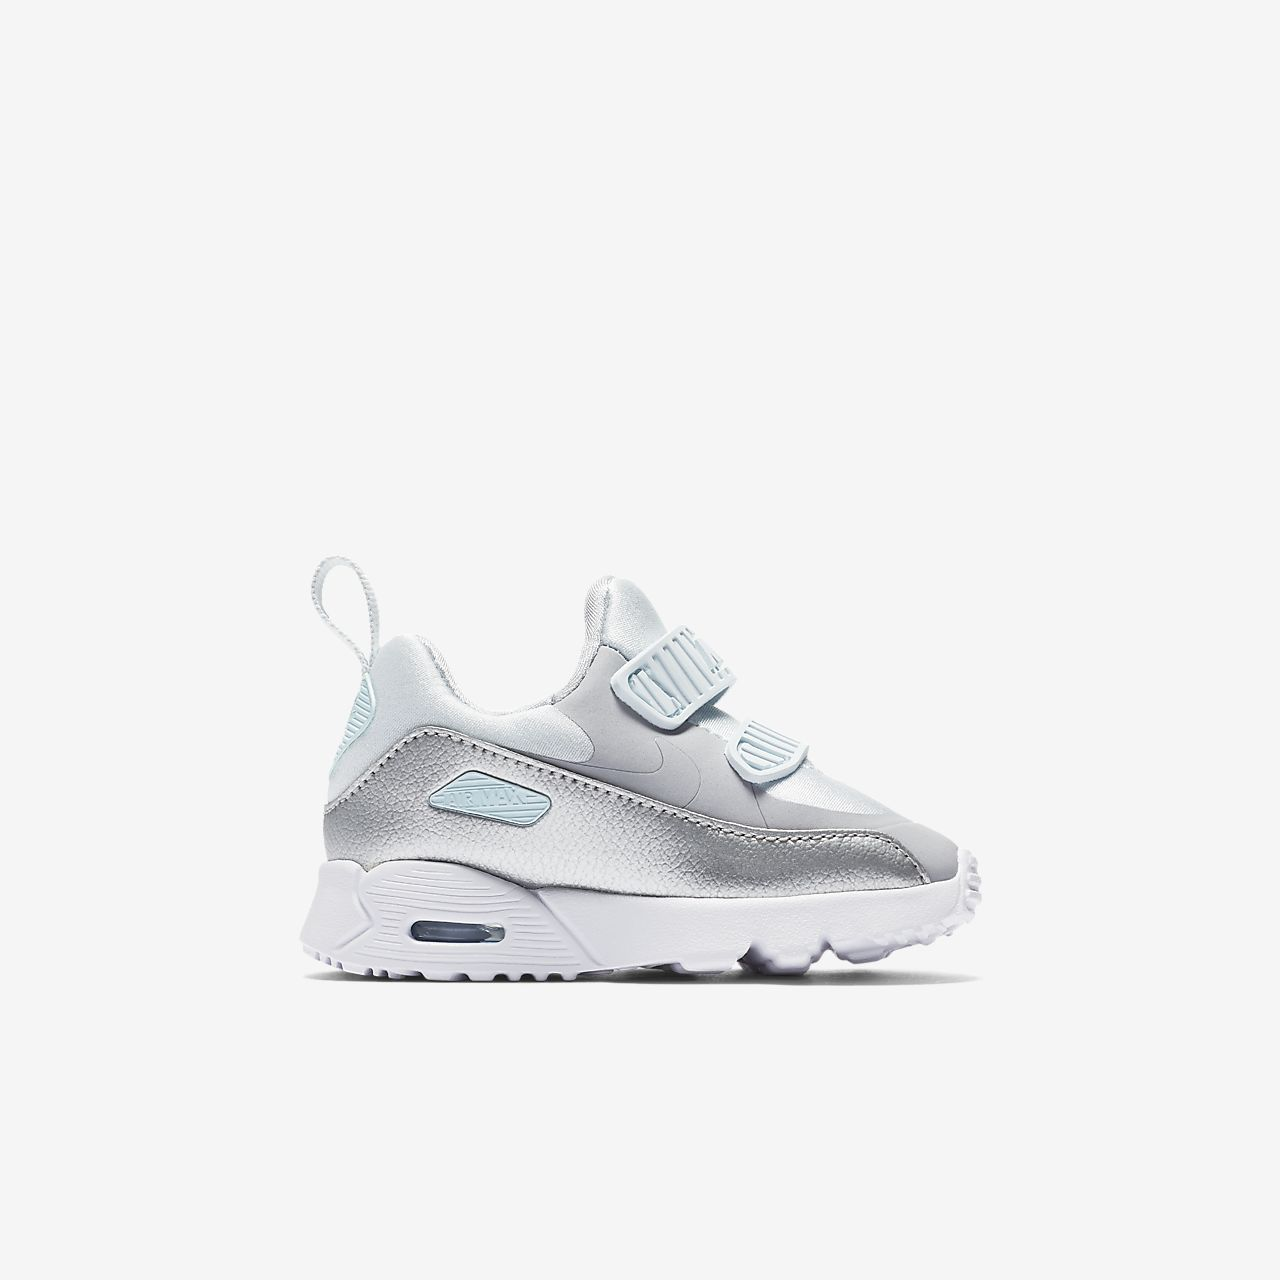 af4f419f87 nike air max 90 infant toddler trainers > OFF43% Discounts